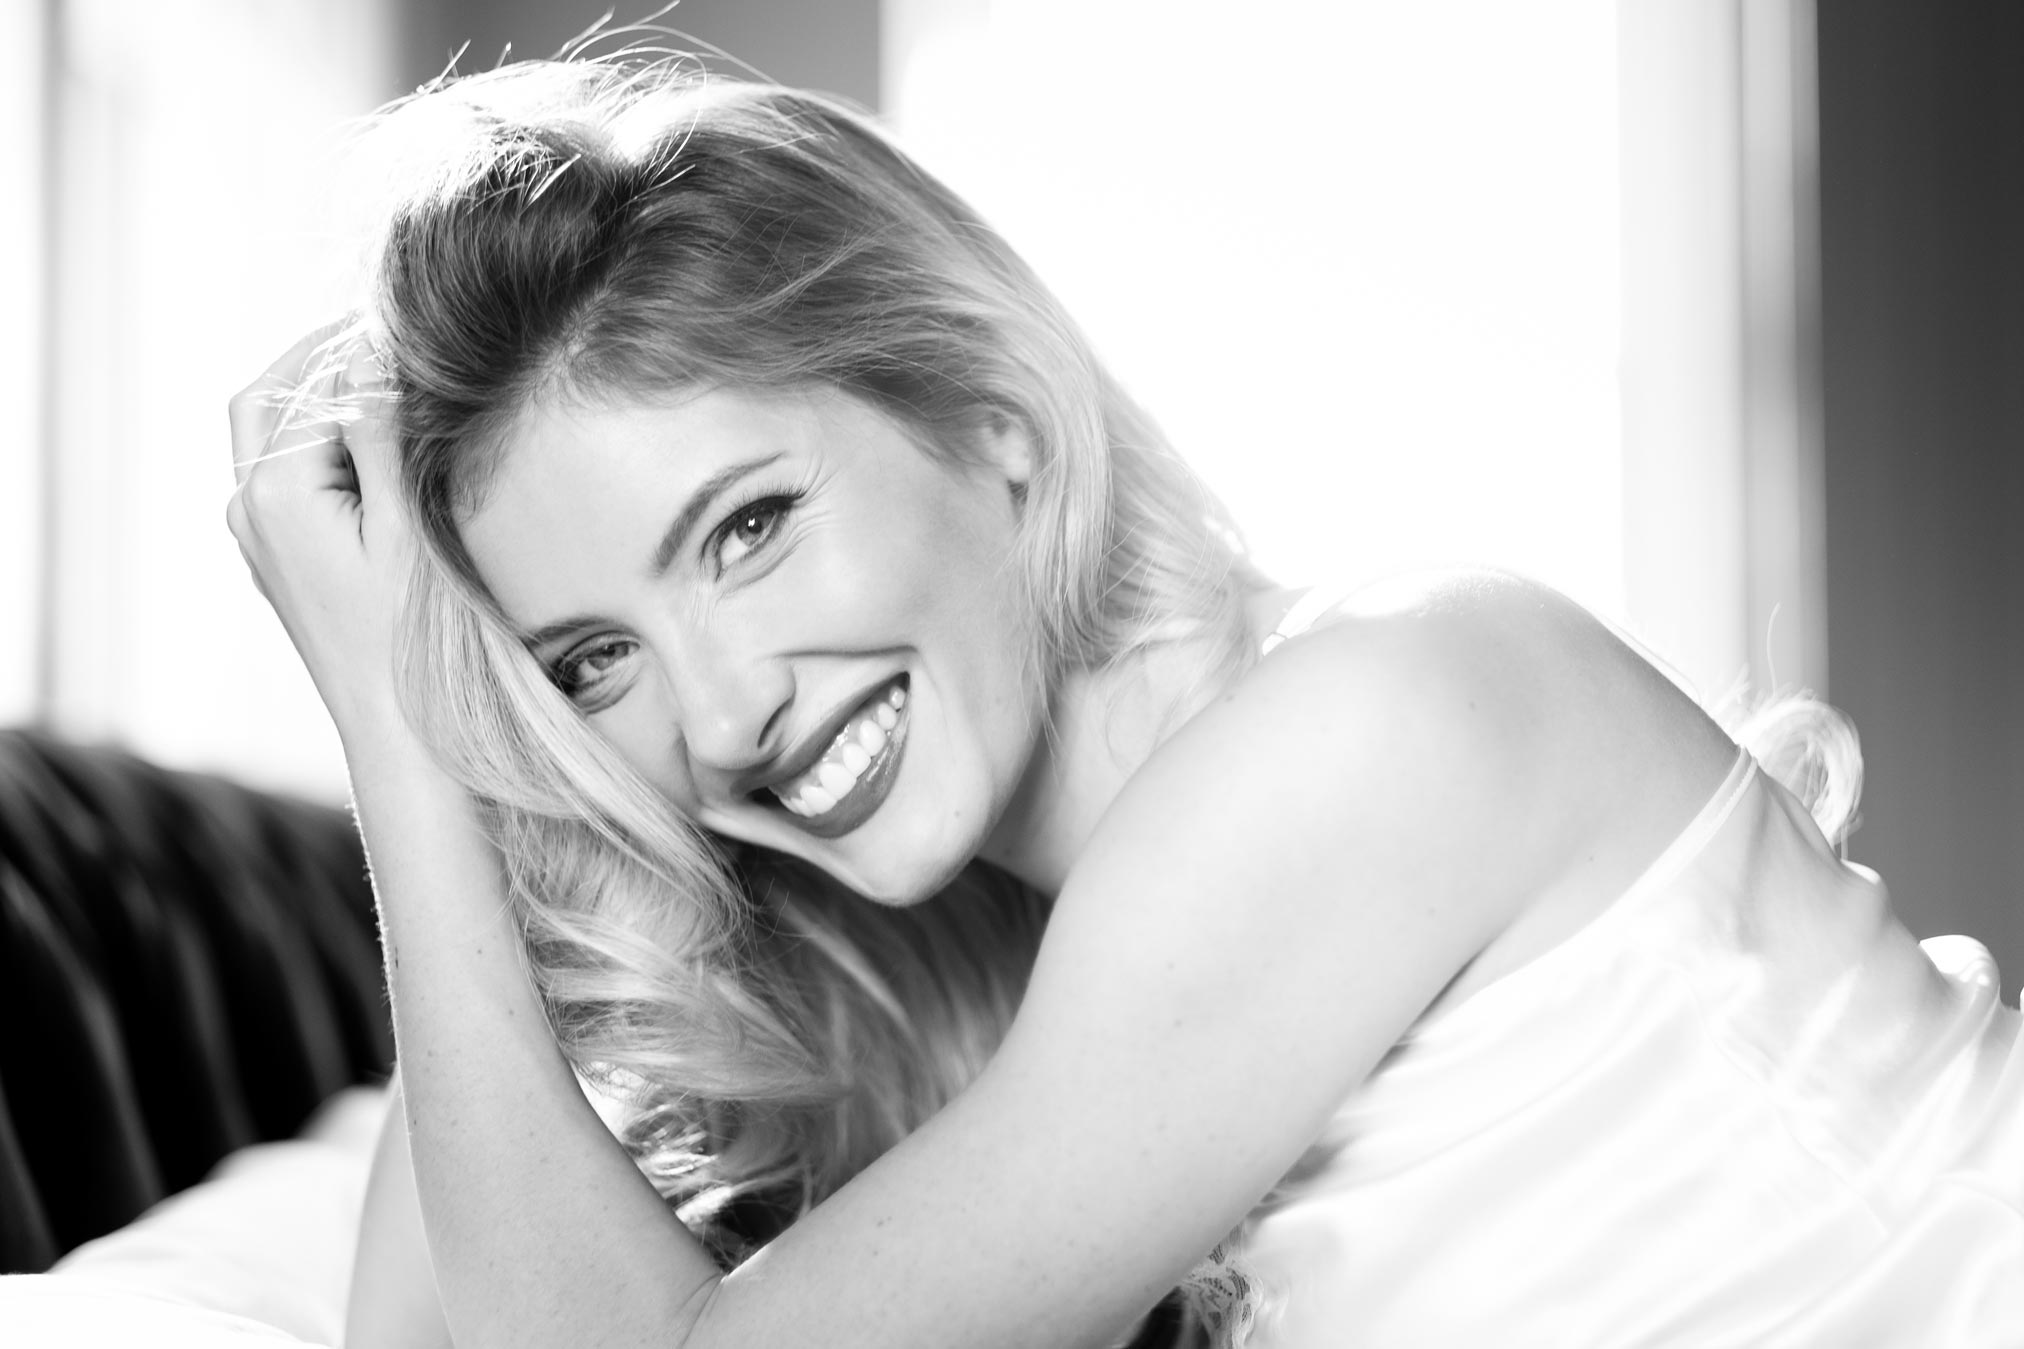 Victoria from Taunton, Somerset lying on a bed laughing. A photograph by Damien Lovegrove.